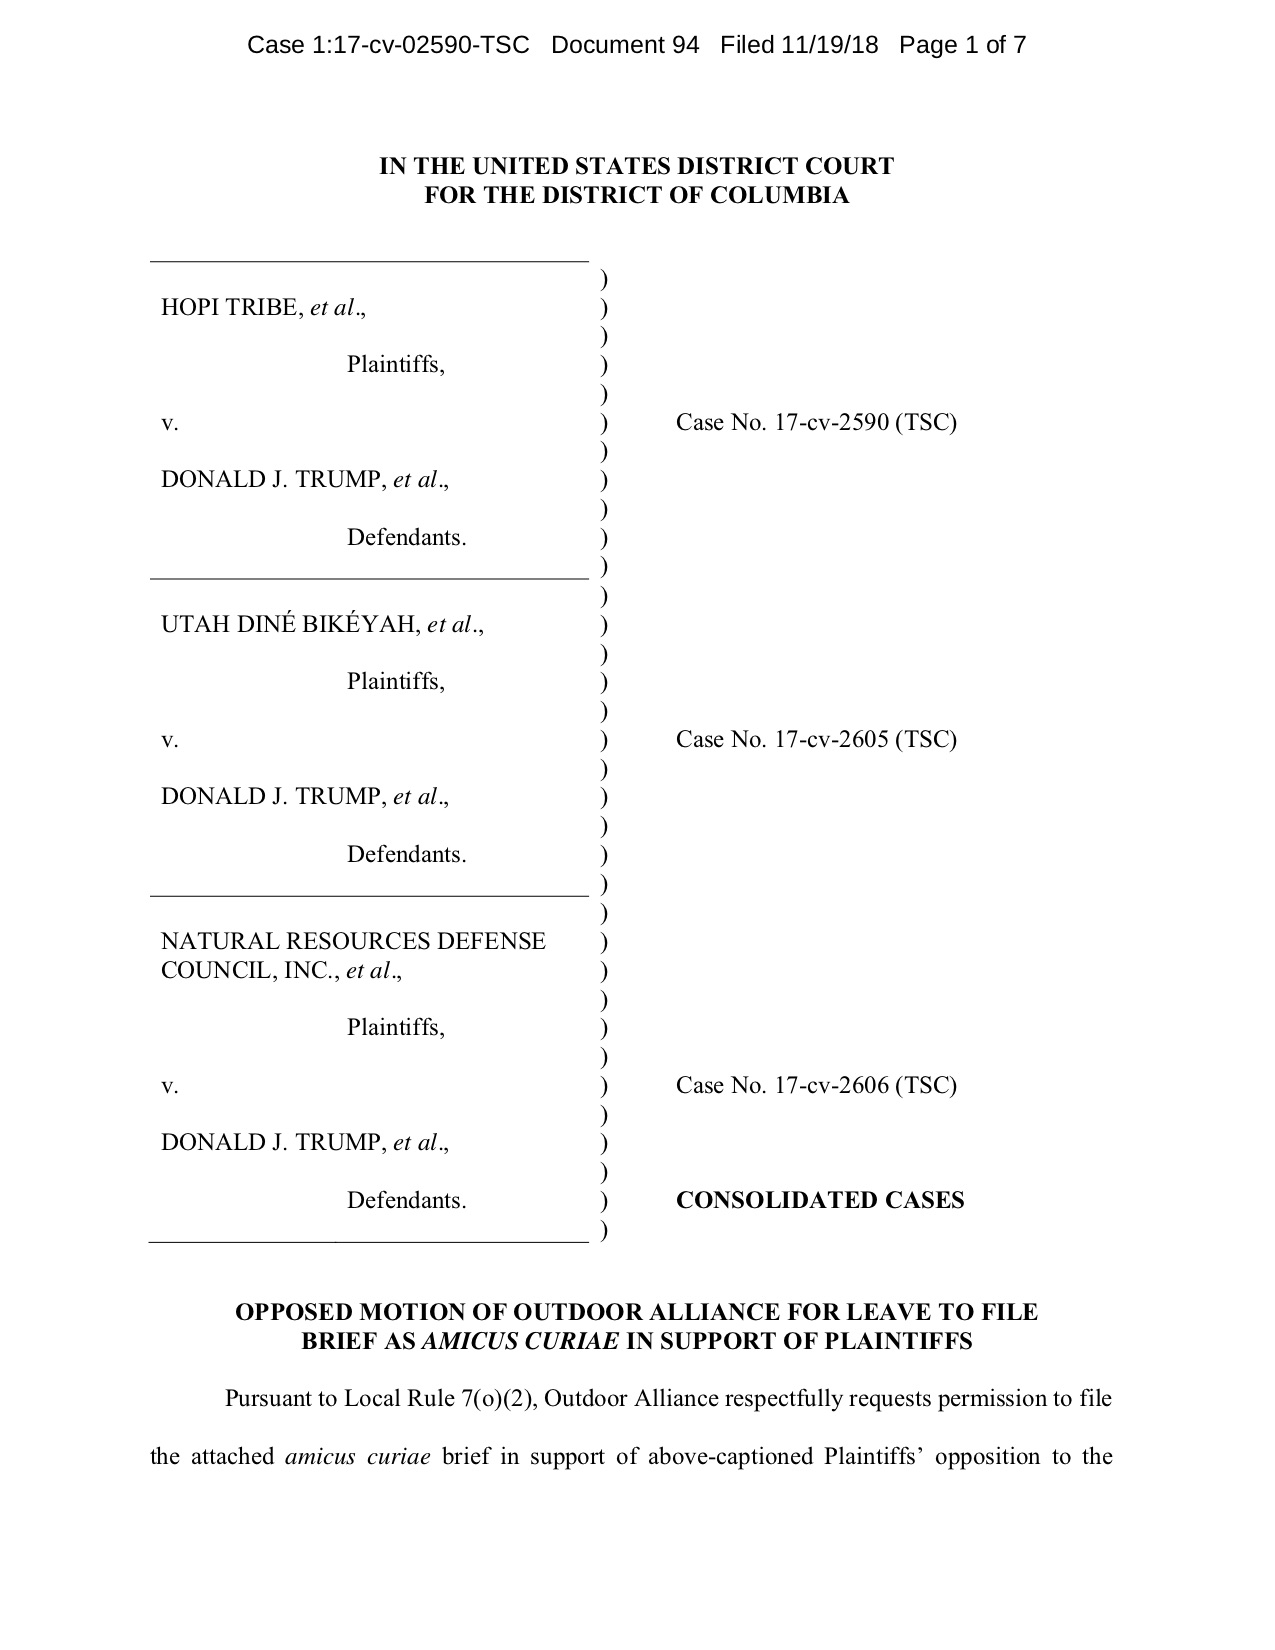 Click to view or download a copy of Outdoor Alliance's amicus brief.